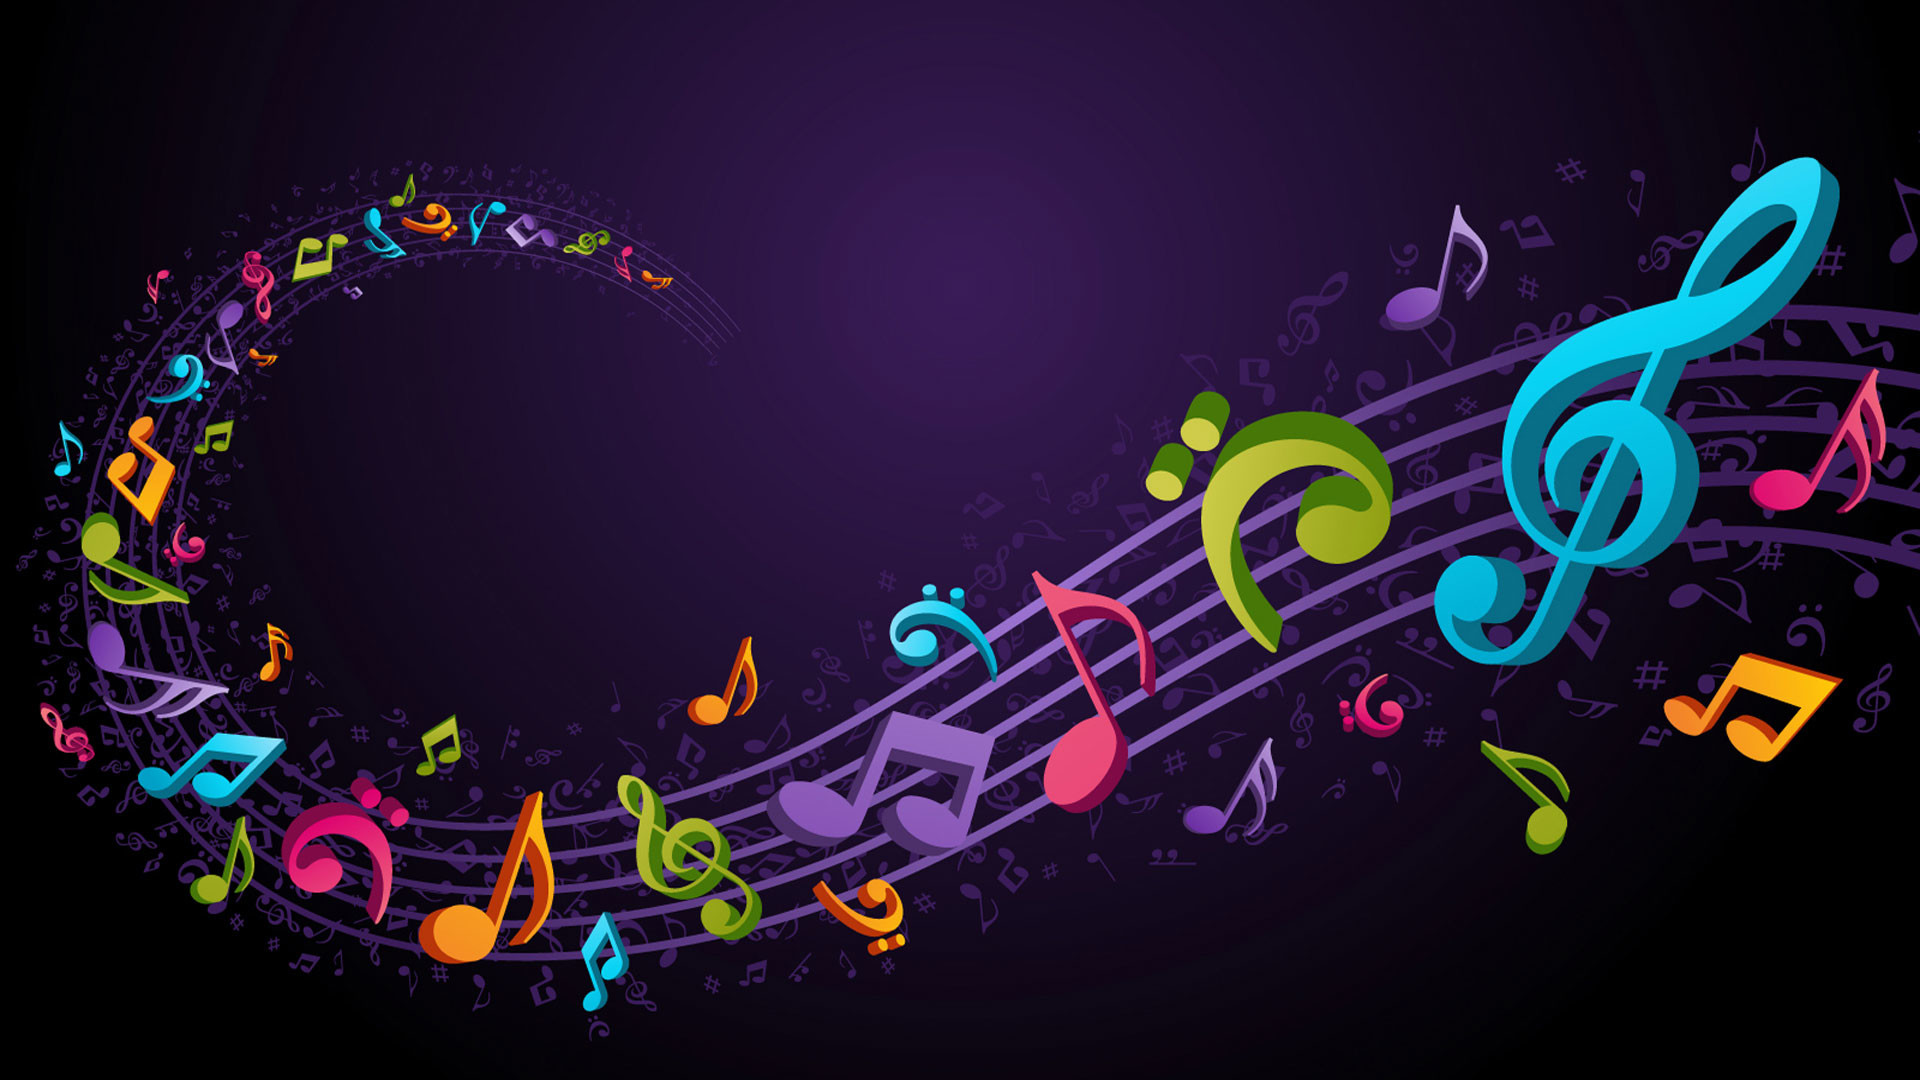 Colorful Music Notes In A Lin Hd Wallpaper Background Images: Music Desktop Backgrounds (57+ Pictures